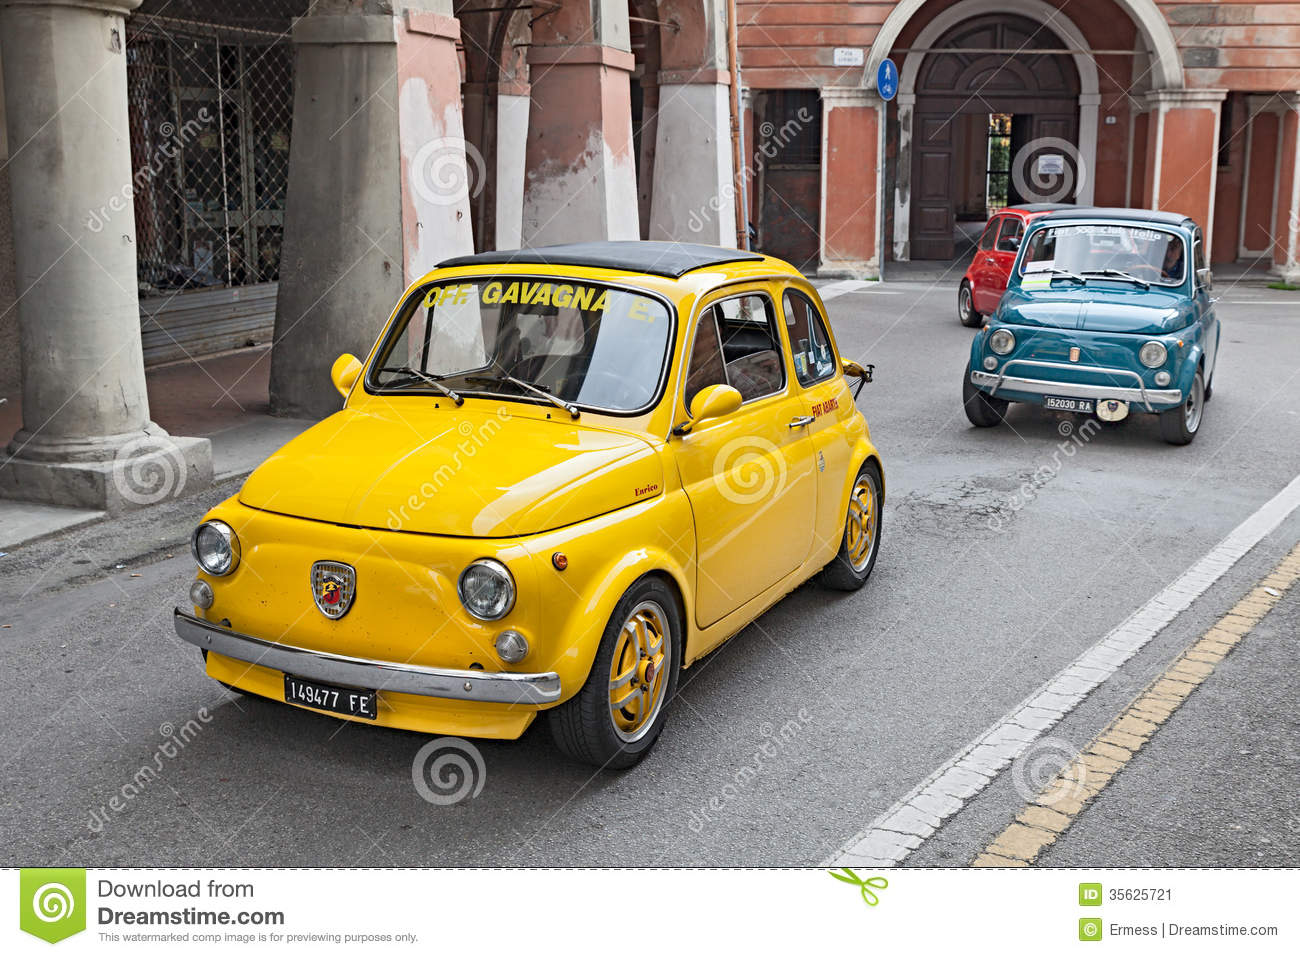 voiture fiat 500 abarth de vintage photo ditorial image. Black Bedroom Furniture Sets. Home Design Ideas